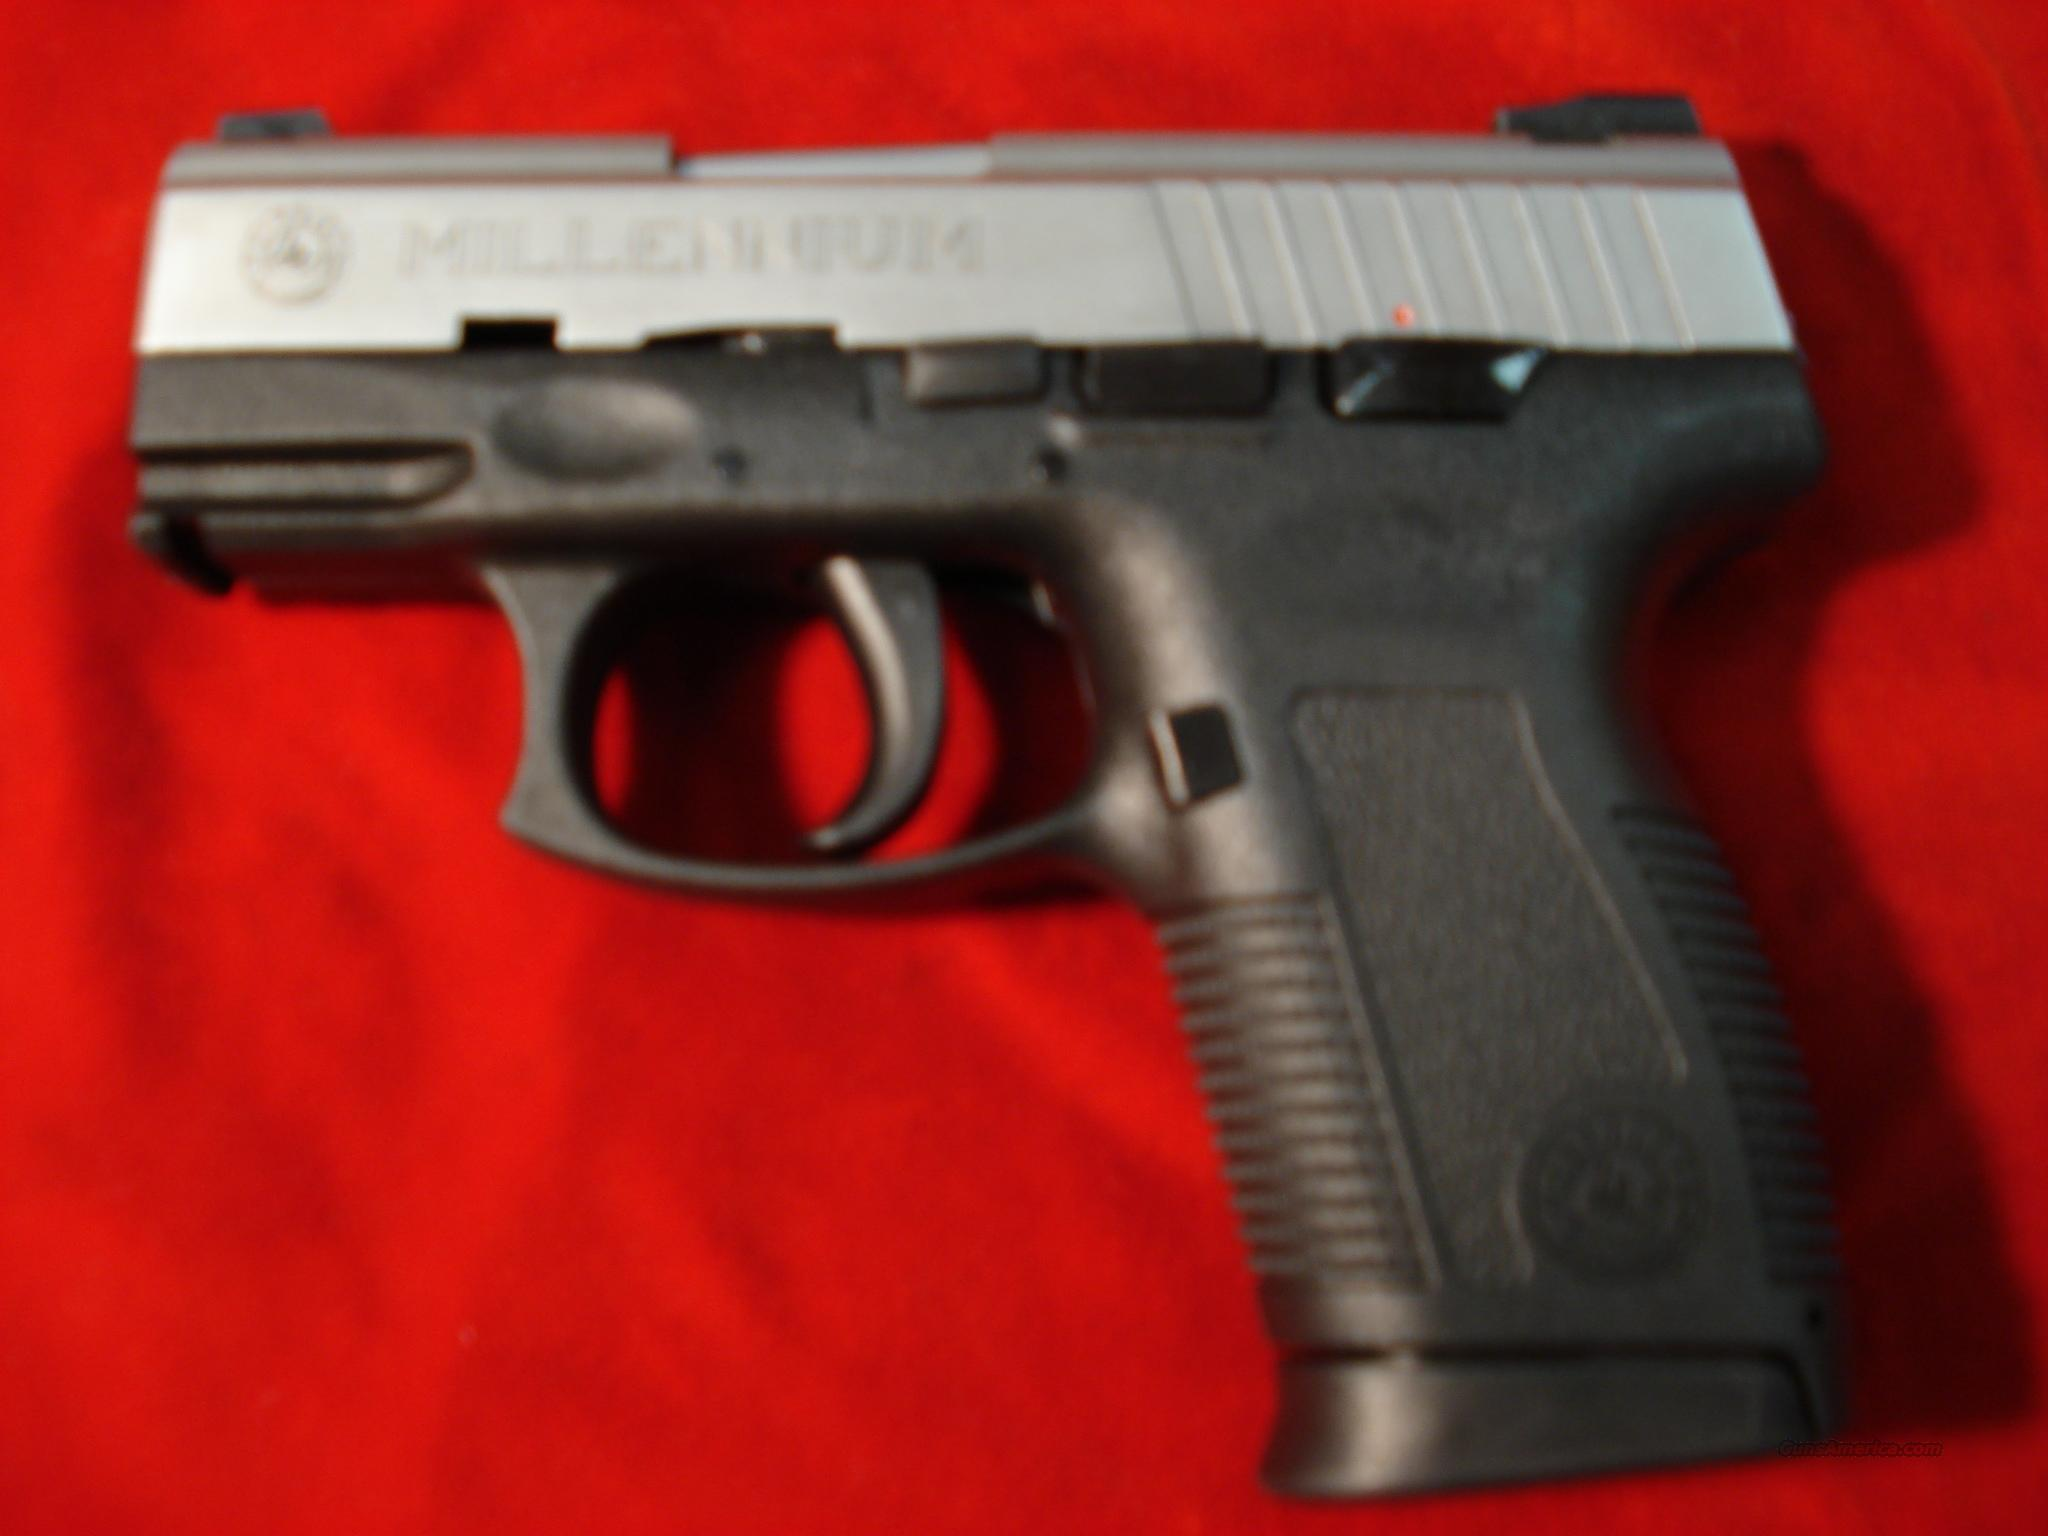 TAURUS PT145 STAINLESS MILLENNIUM PRO 45ACP NEW   Guns > Pistols > Taurus Pistols/Revolvers > Pistols > Polymer Frame